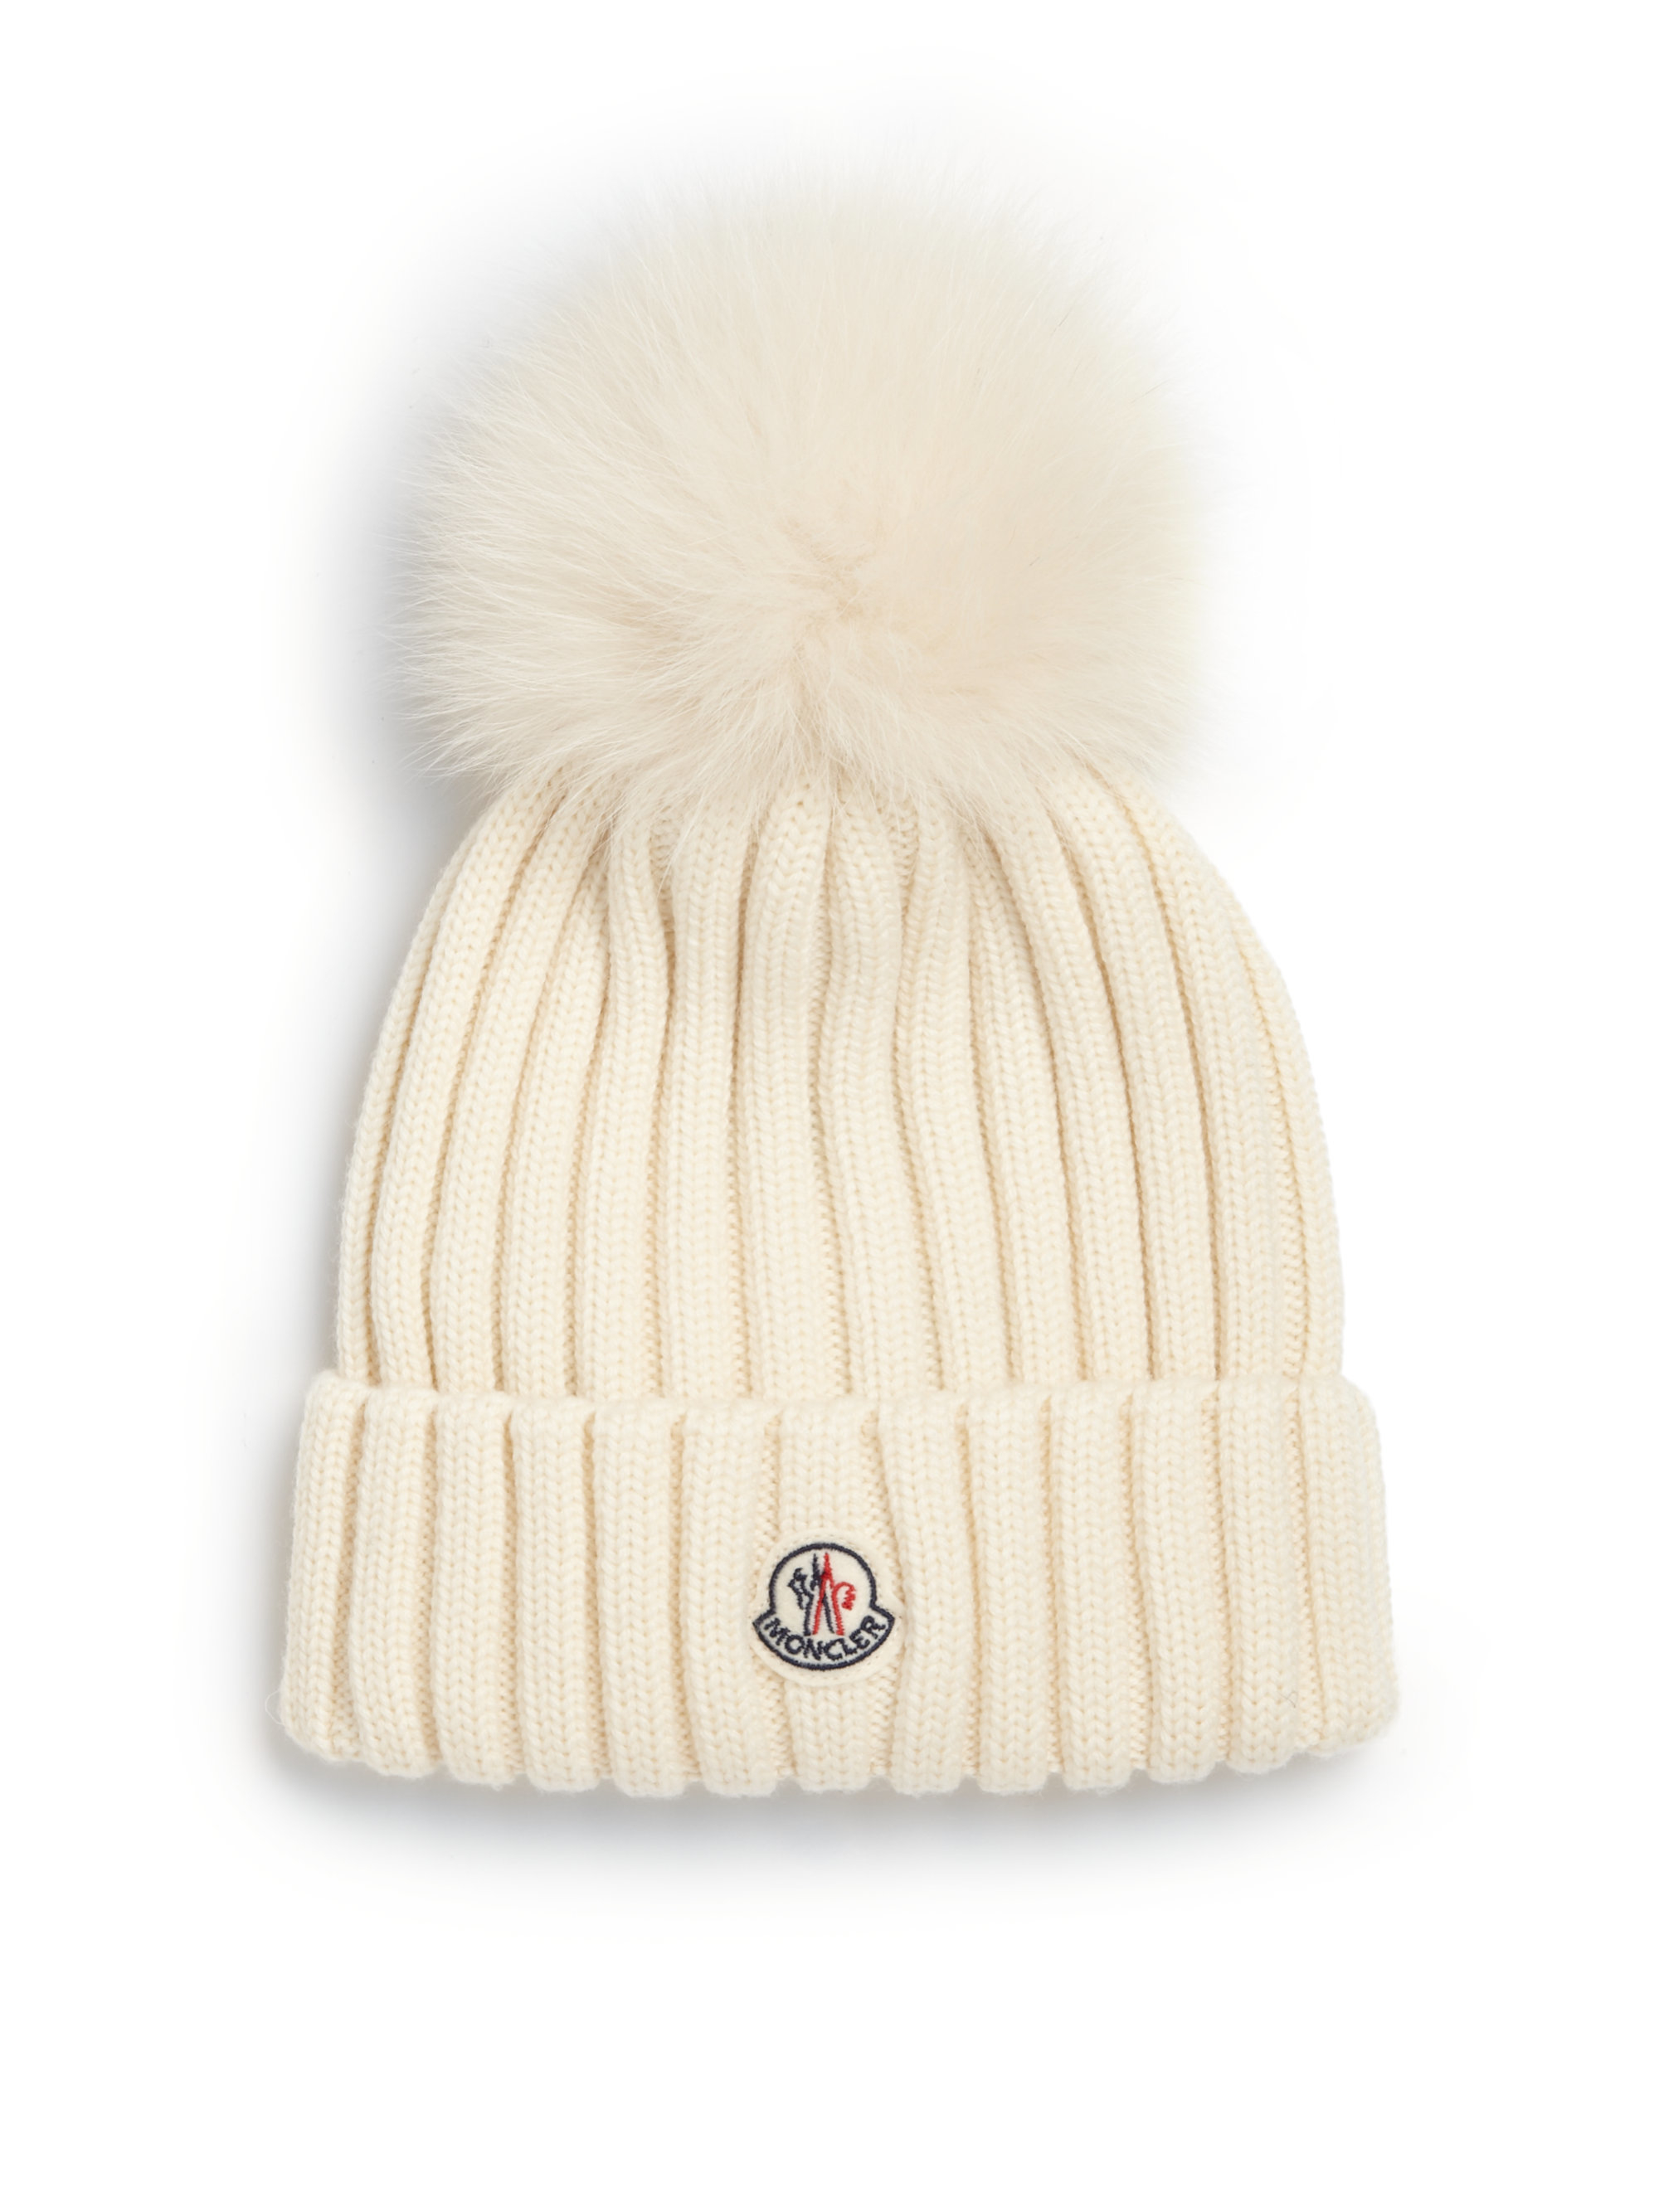 33eb3597ac1 Lyst - Moncler Fur Pom-pom Ribbed Wool Hat in White